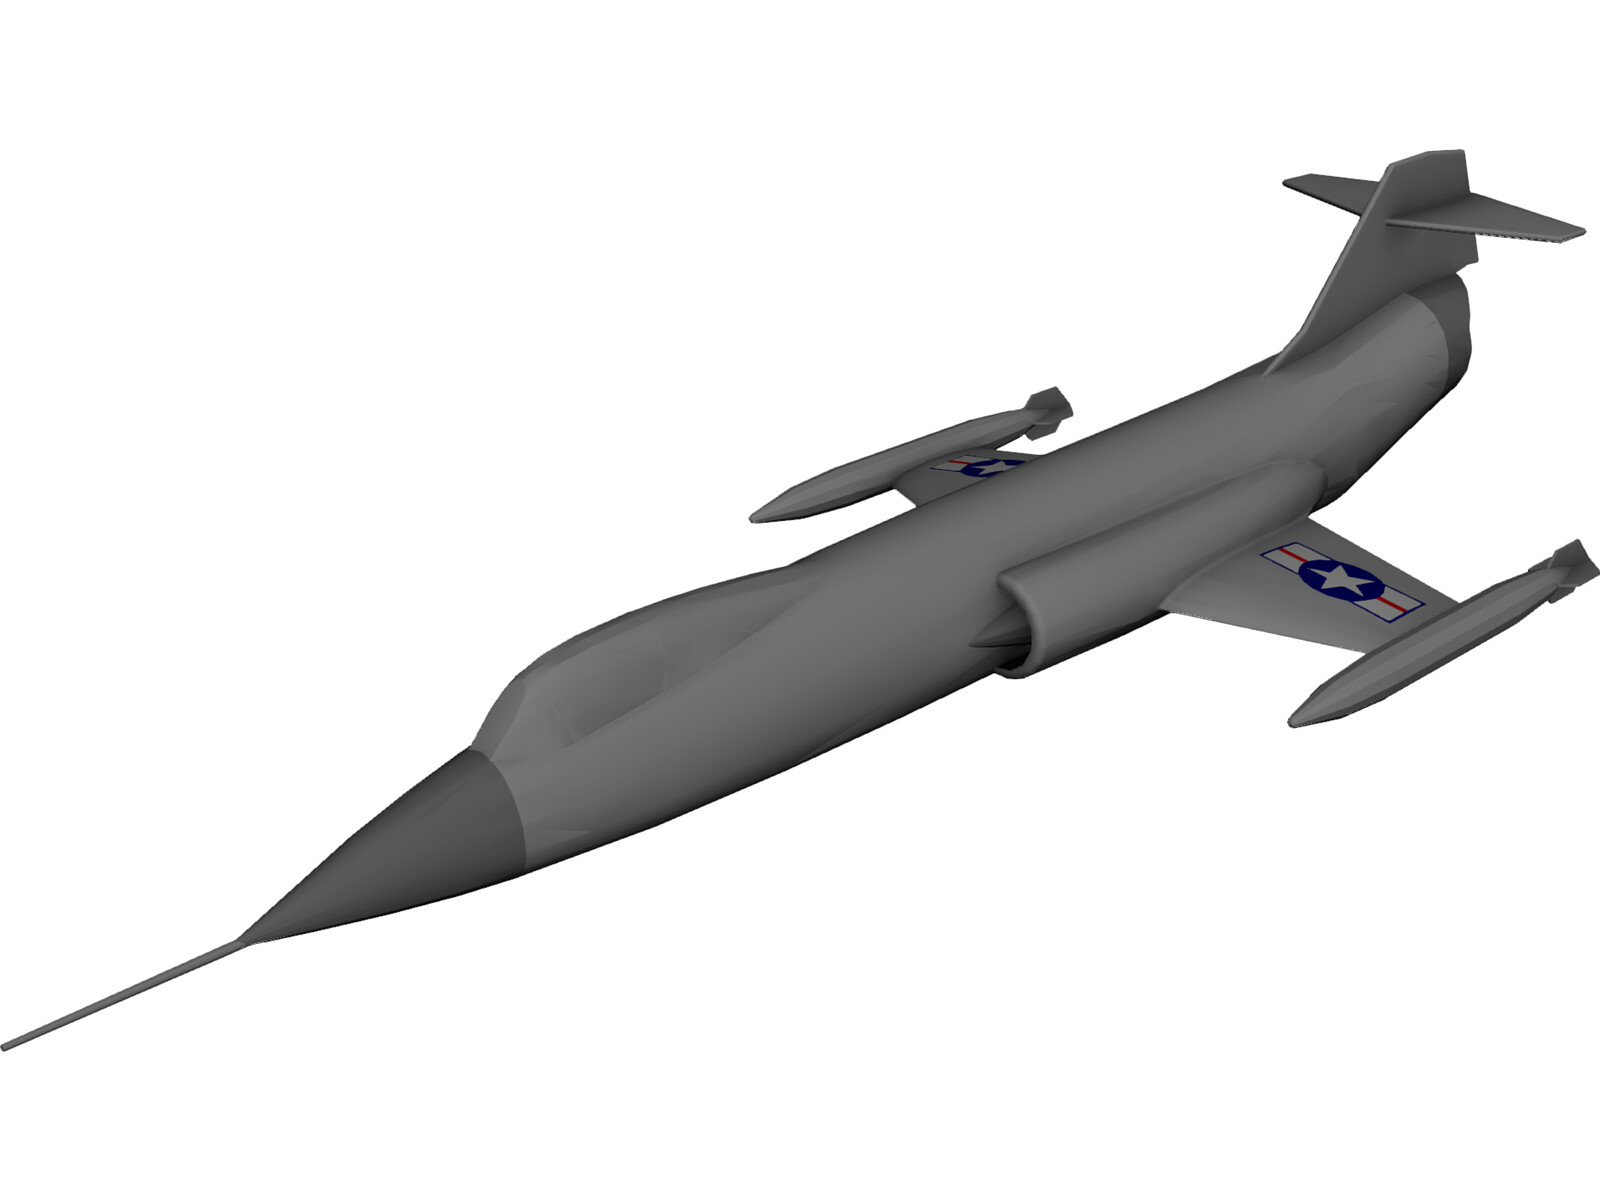 Lockheed F-104 Starfighter 3D CAD Model